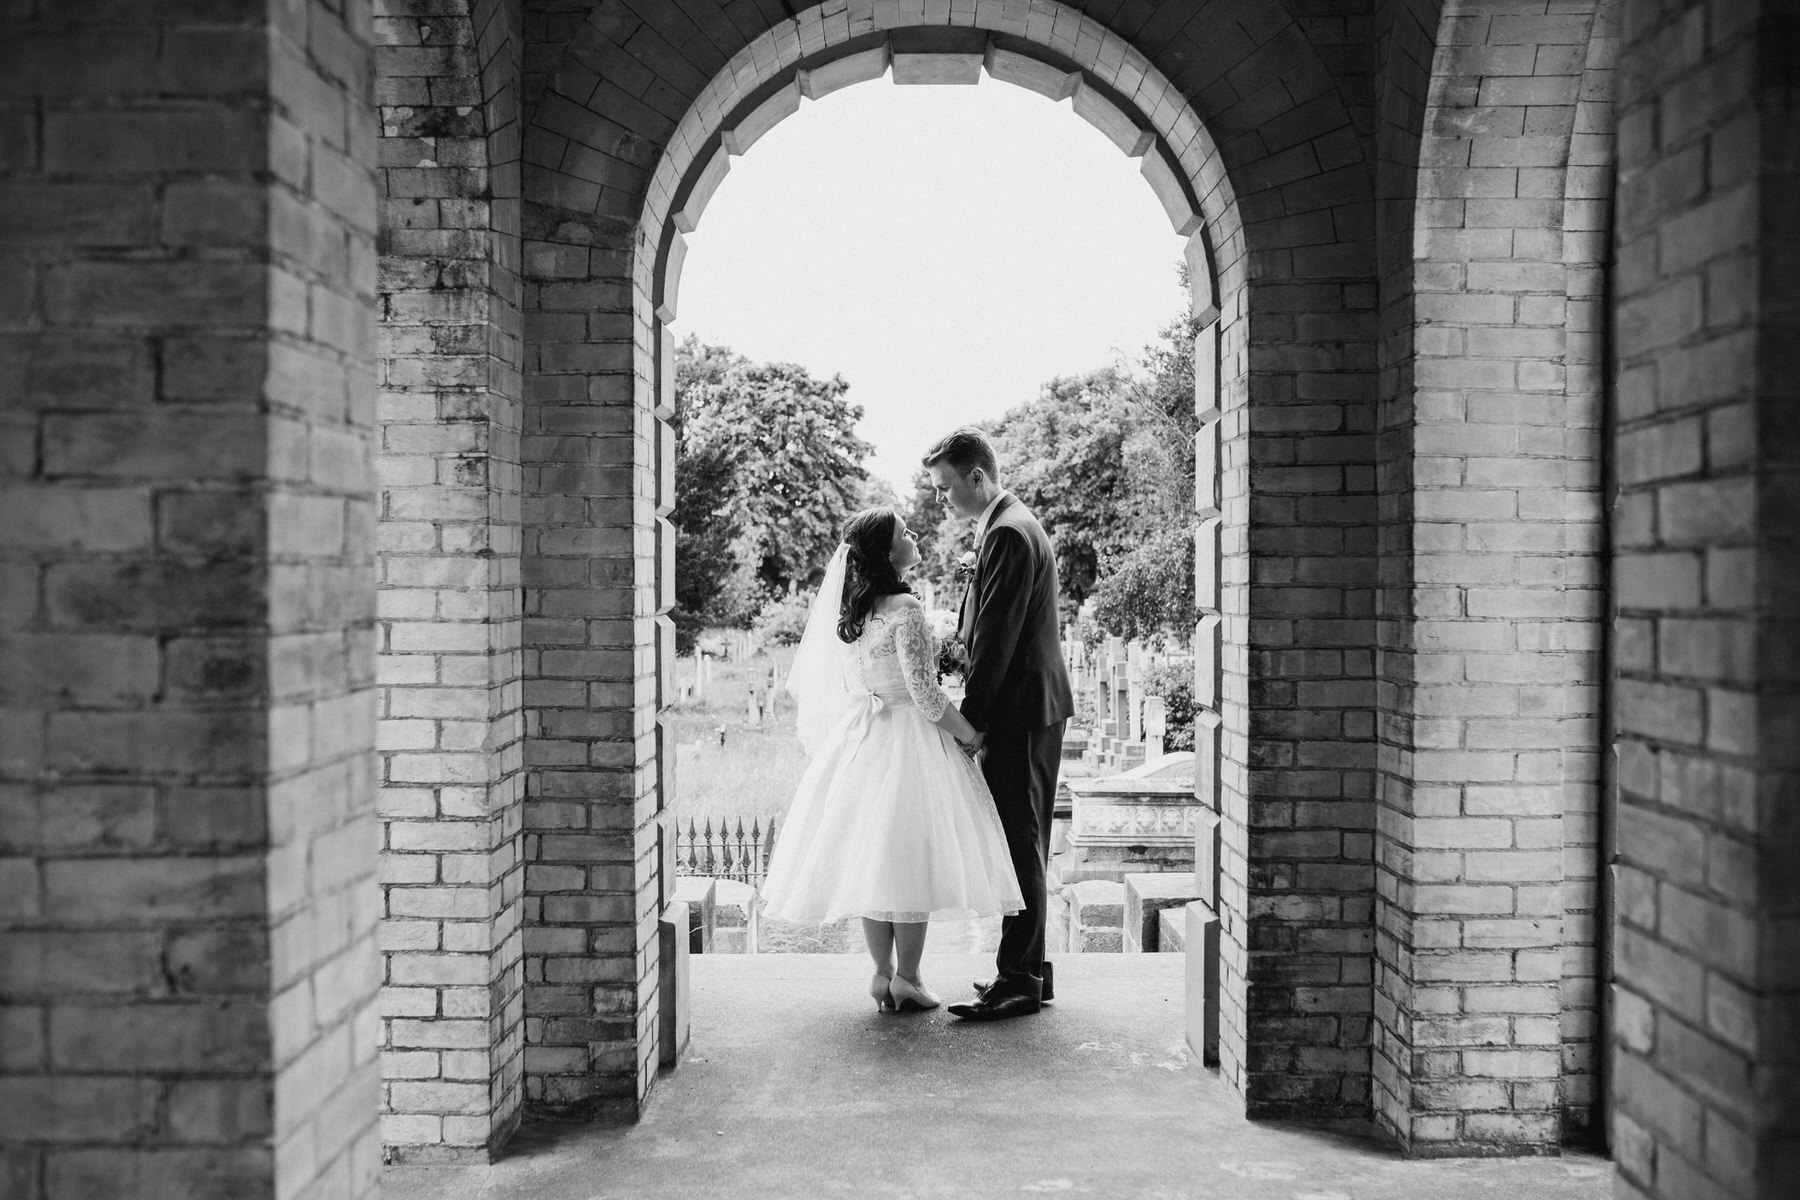 124-groom bride wedding portraits Brompton Cemetery_.jpg